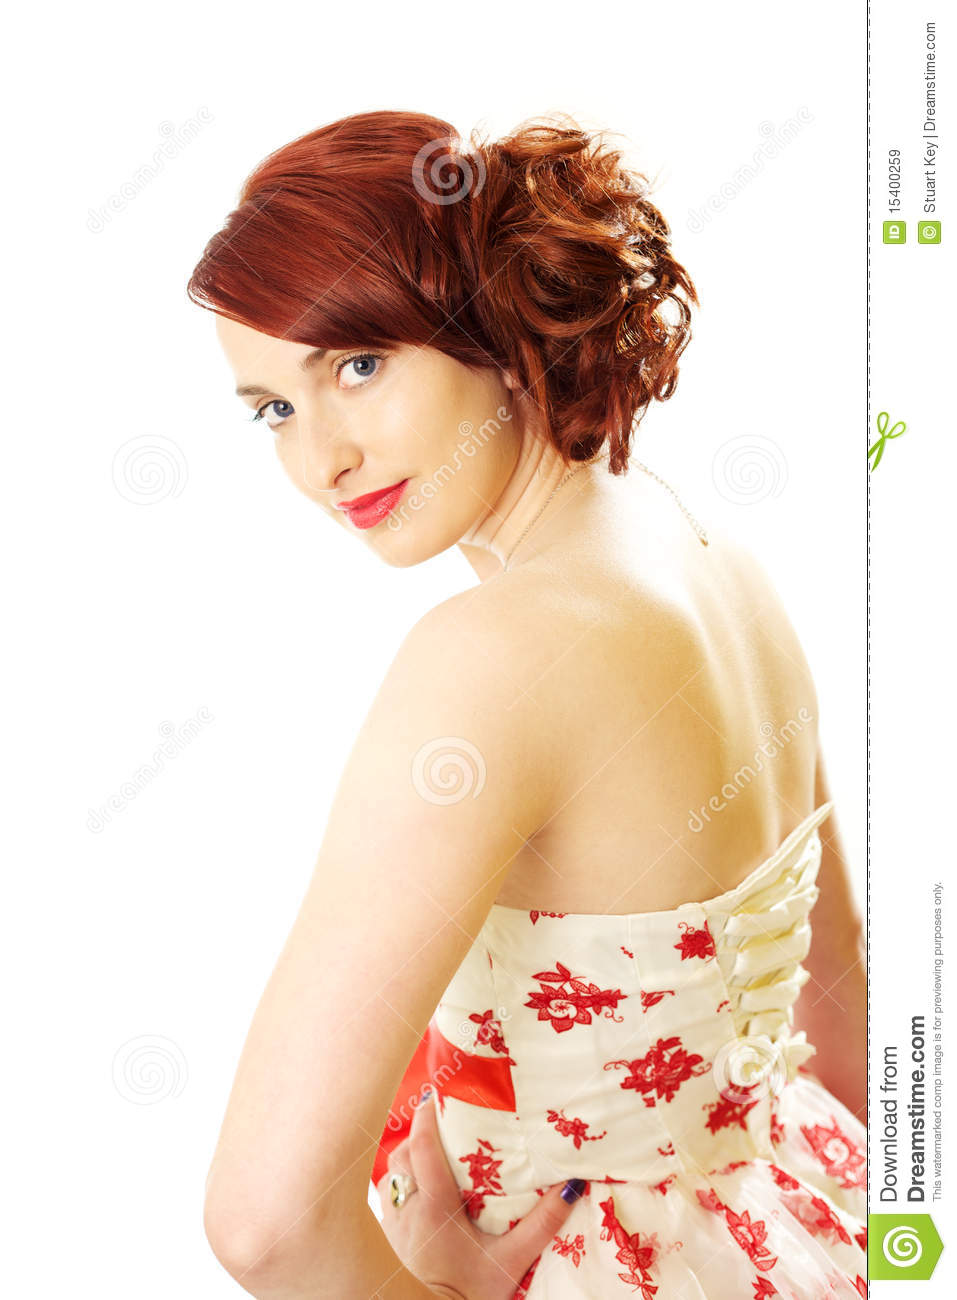 Red Hair Beauty 50s Style Stock Image Image Of Glamorous 15400259